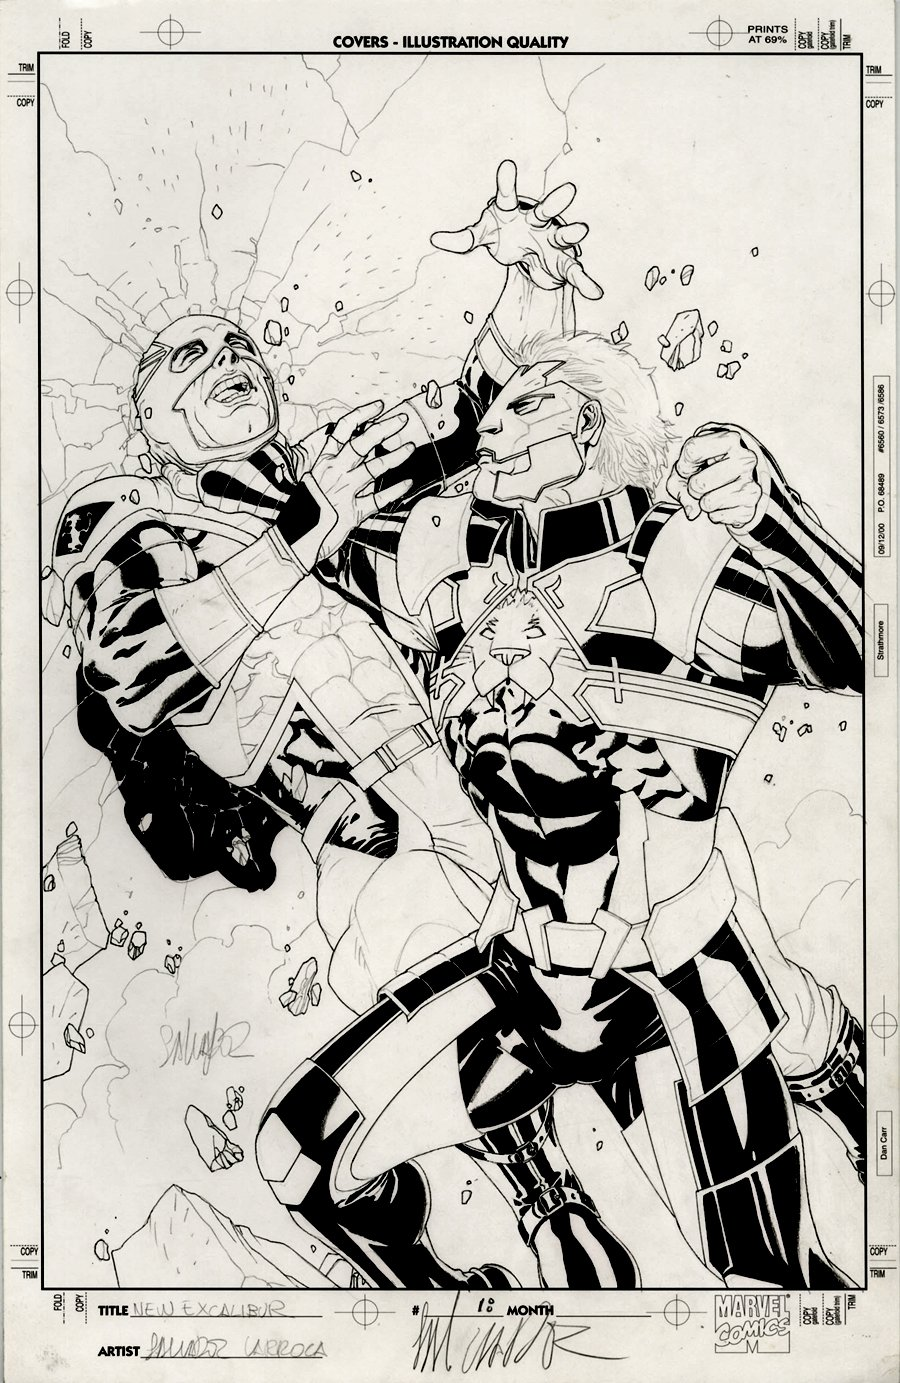 New Excalibur #18 Cover (2007)